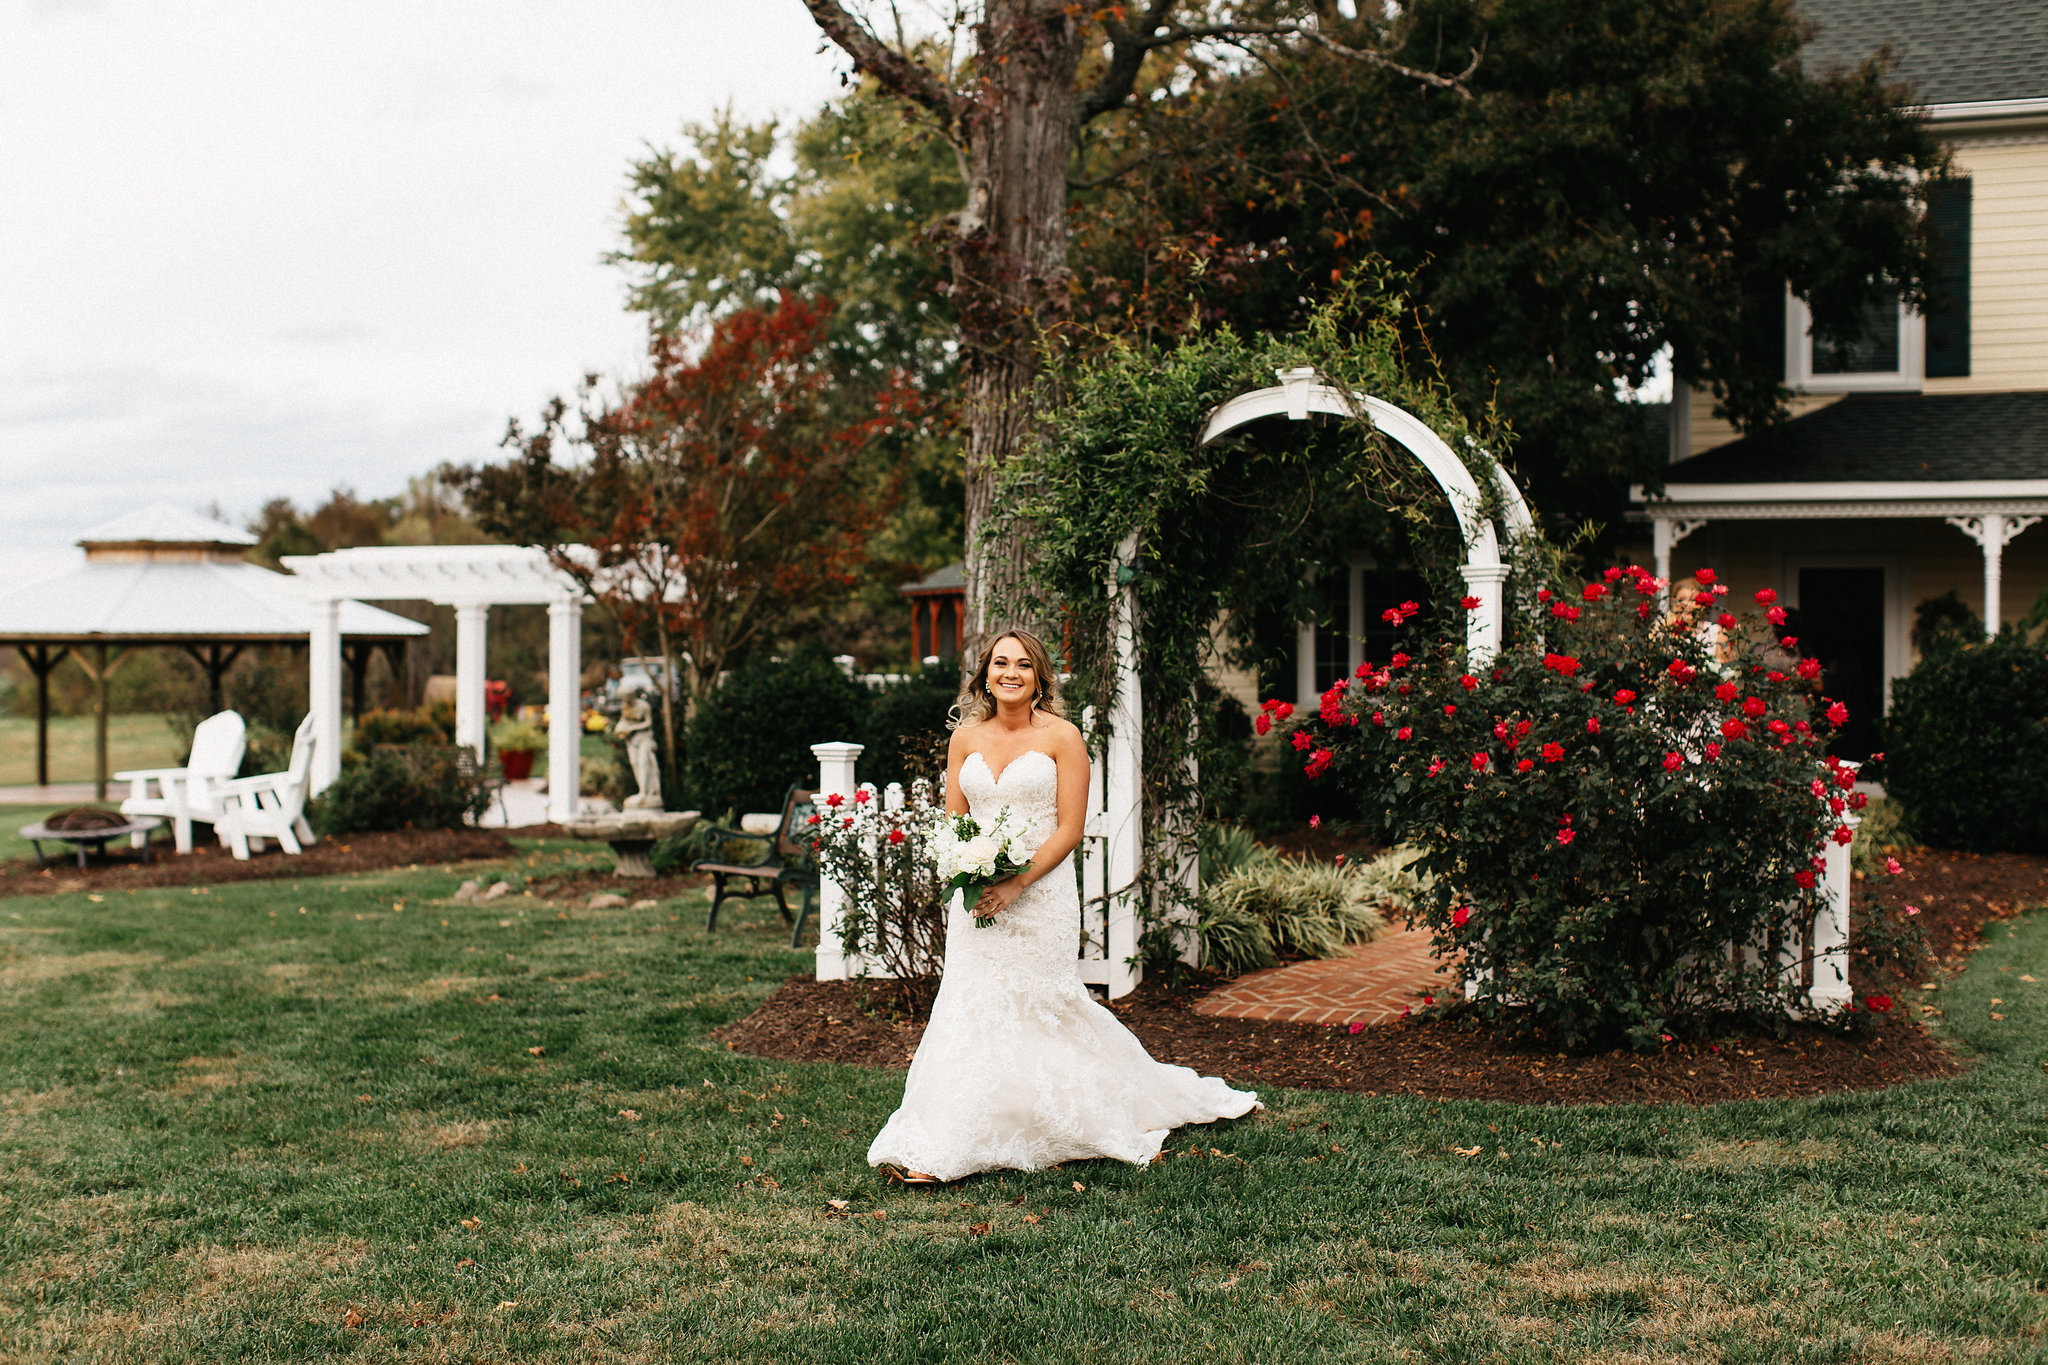 Ashley&NathanMarried2017-11-10at19.26.47PM21.jpg